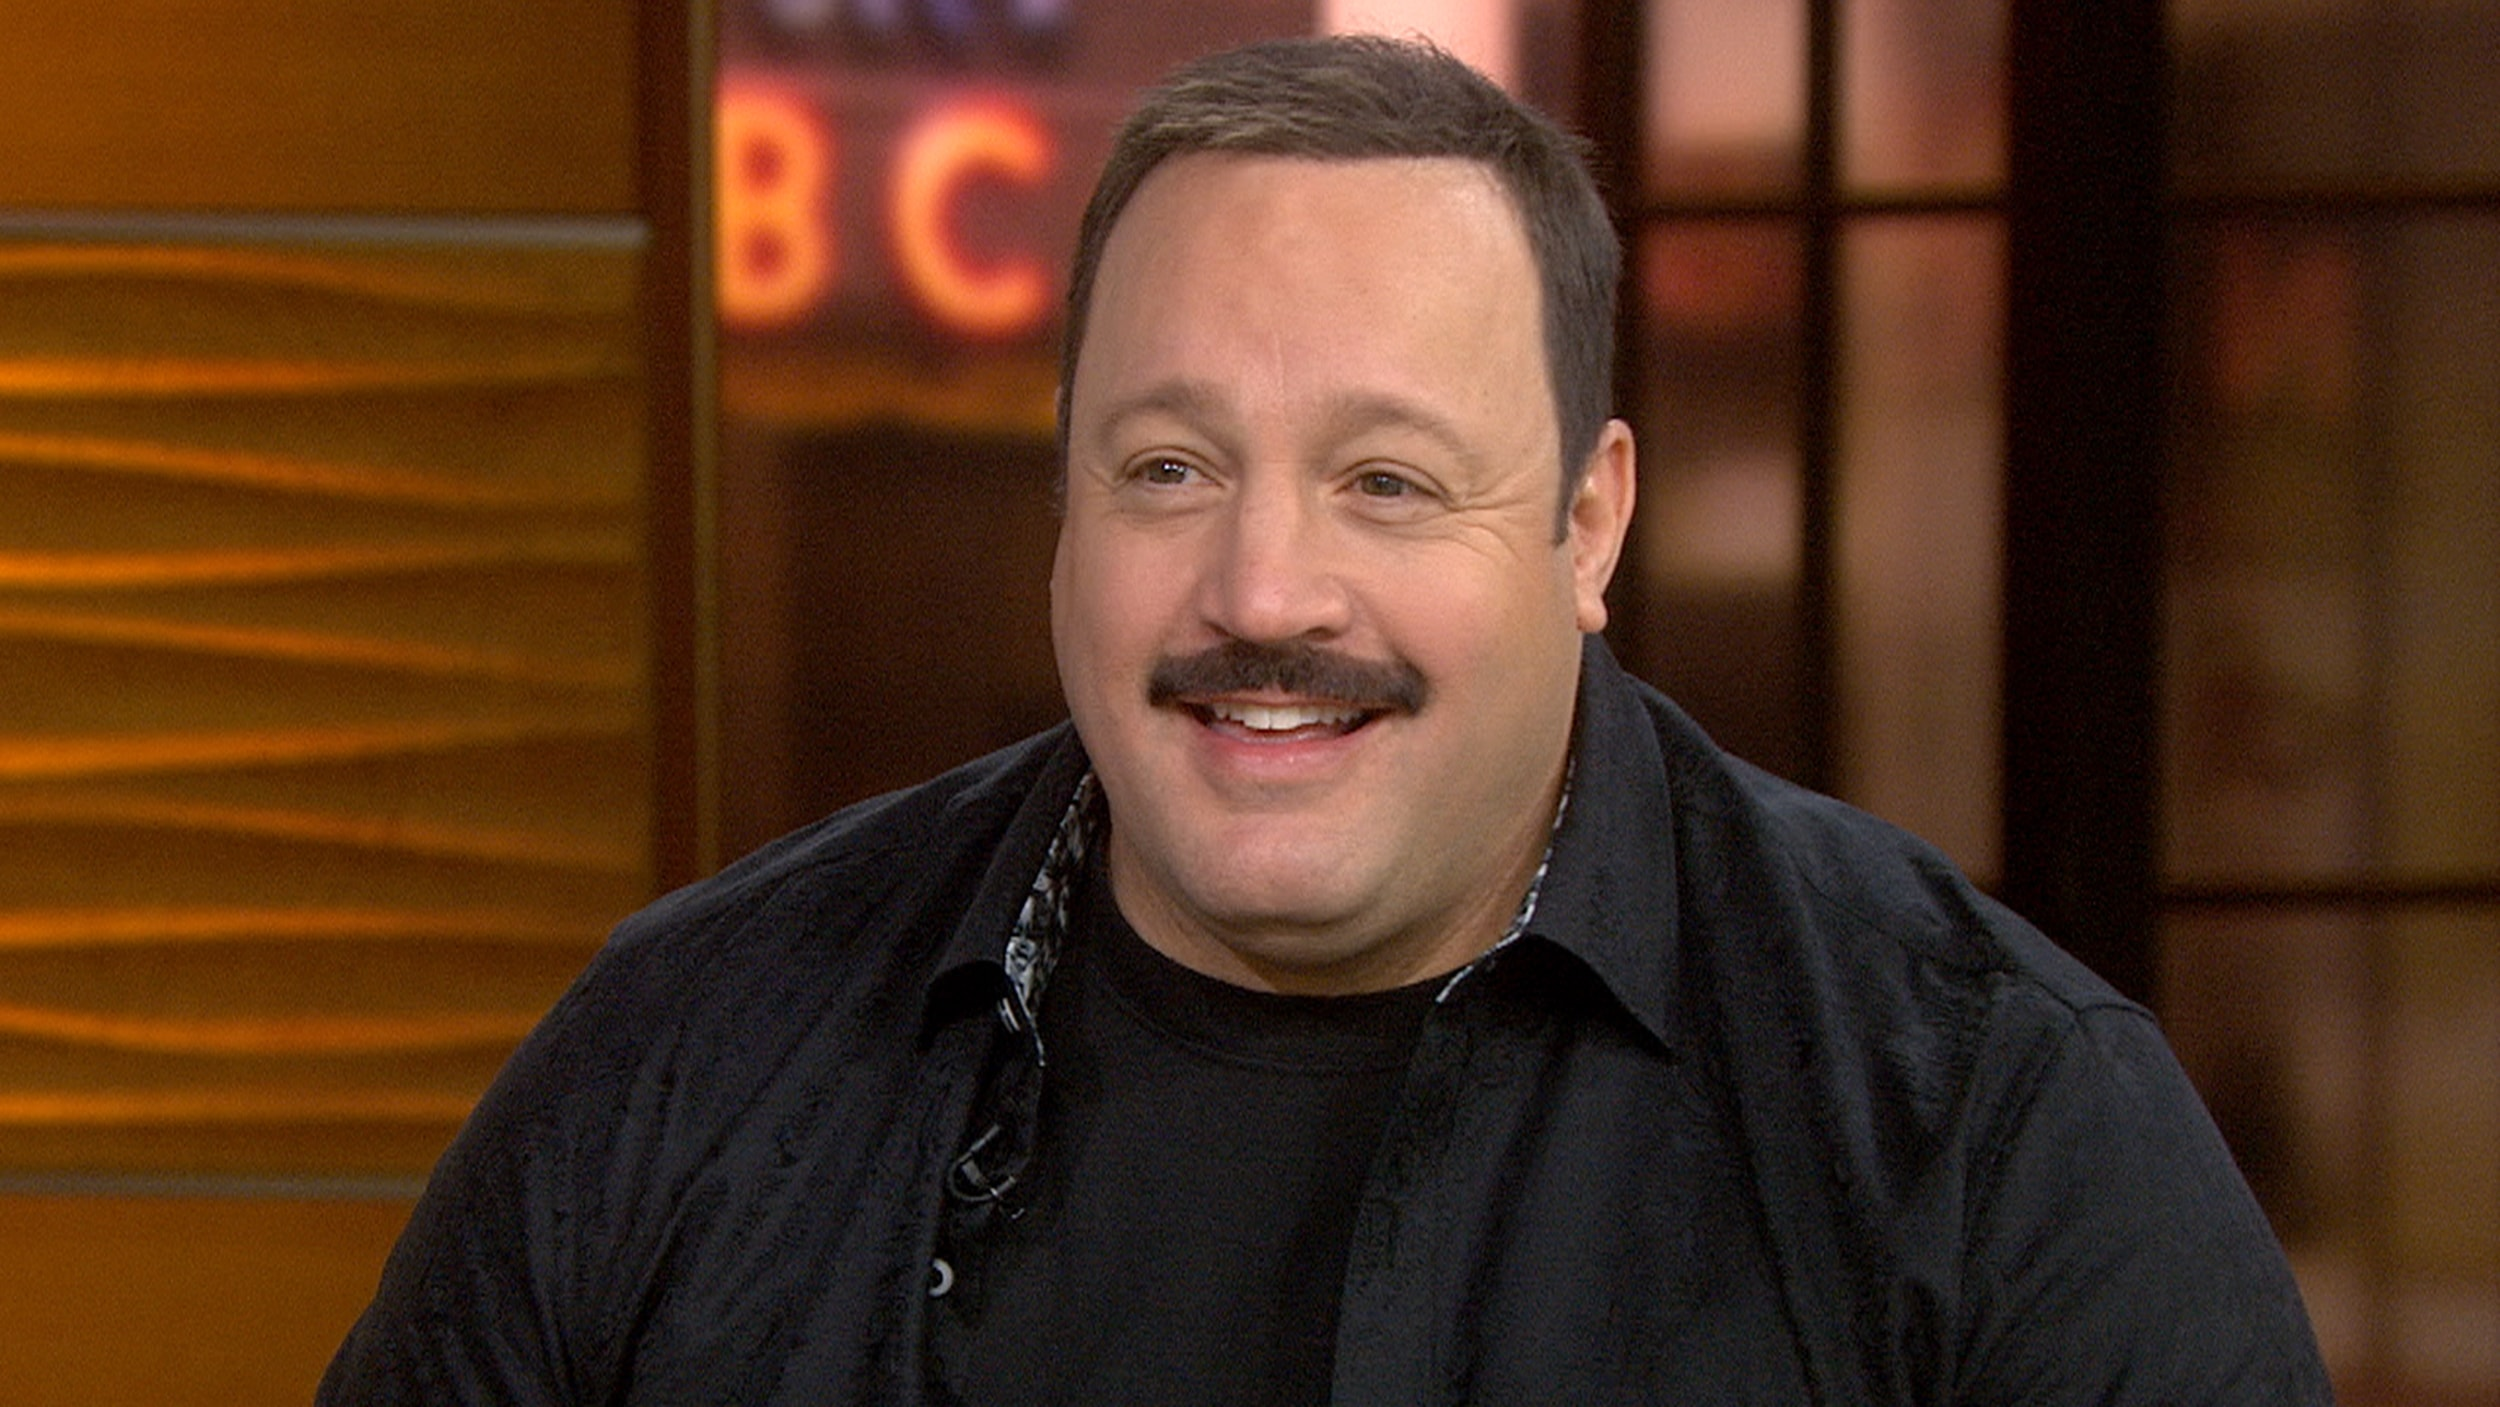 Kevin James HQ wallpapers